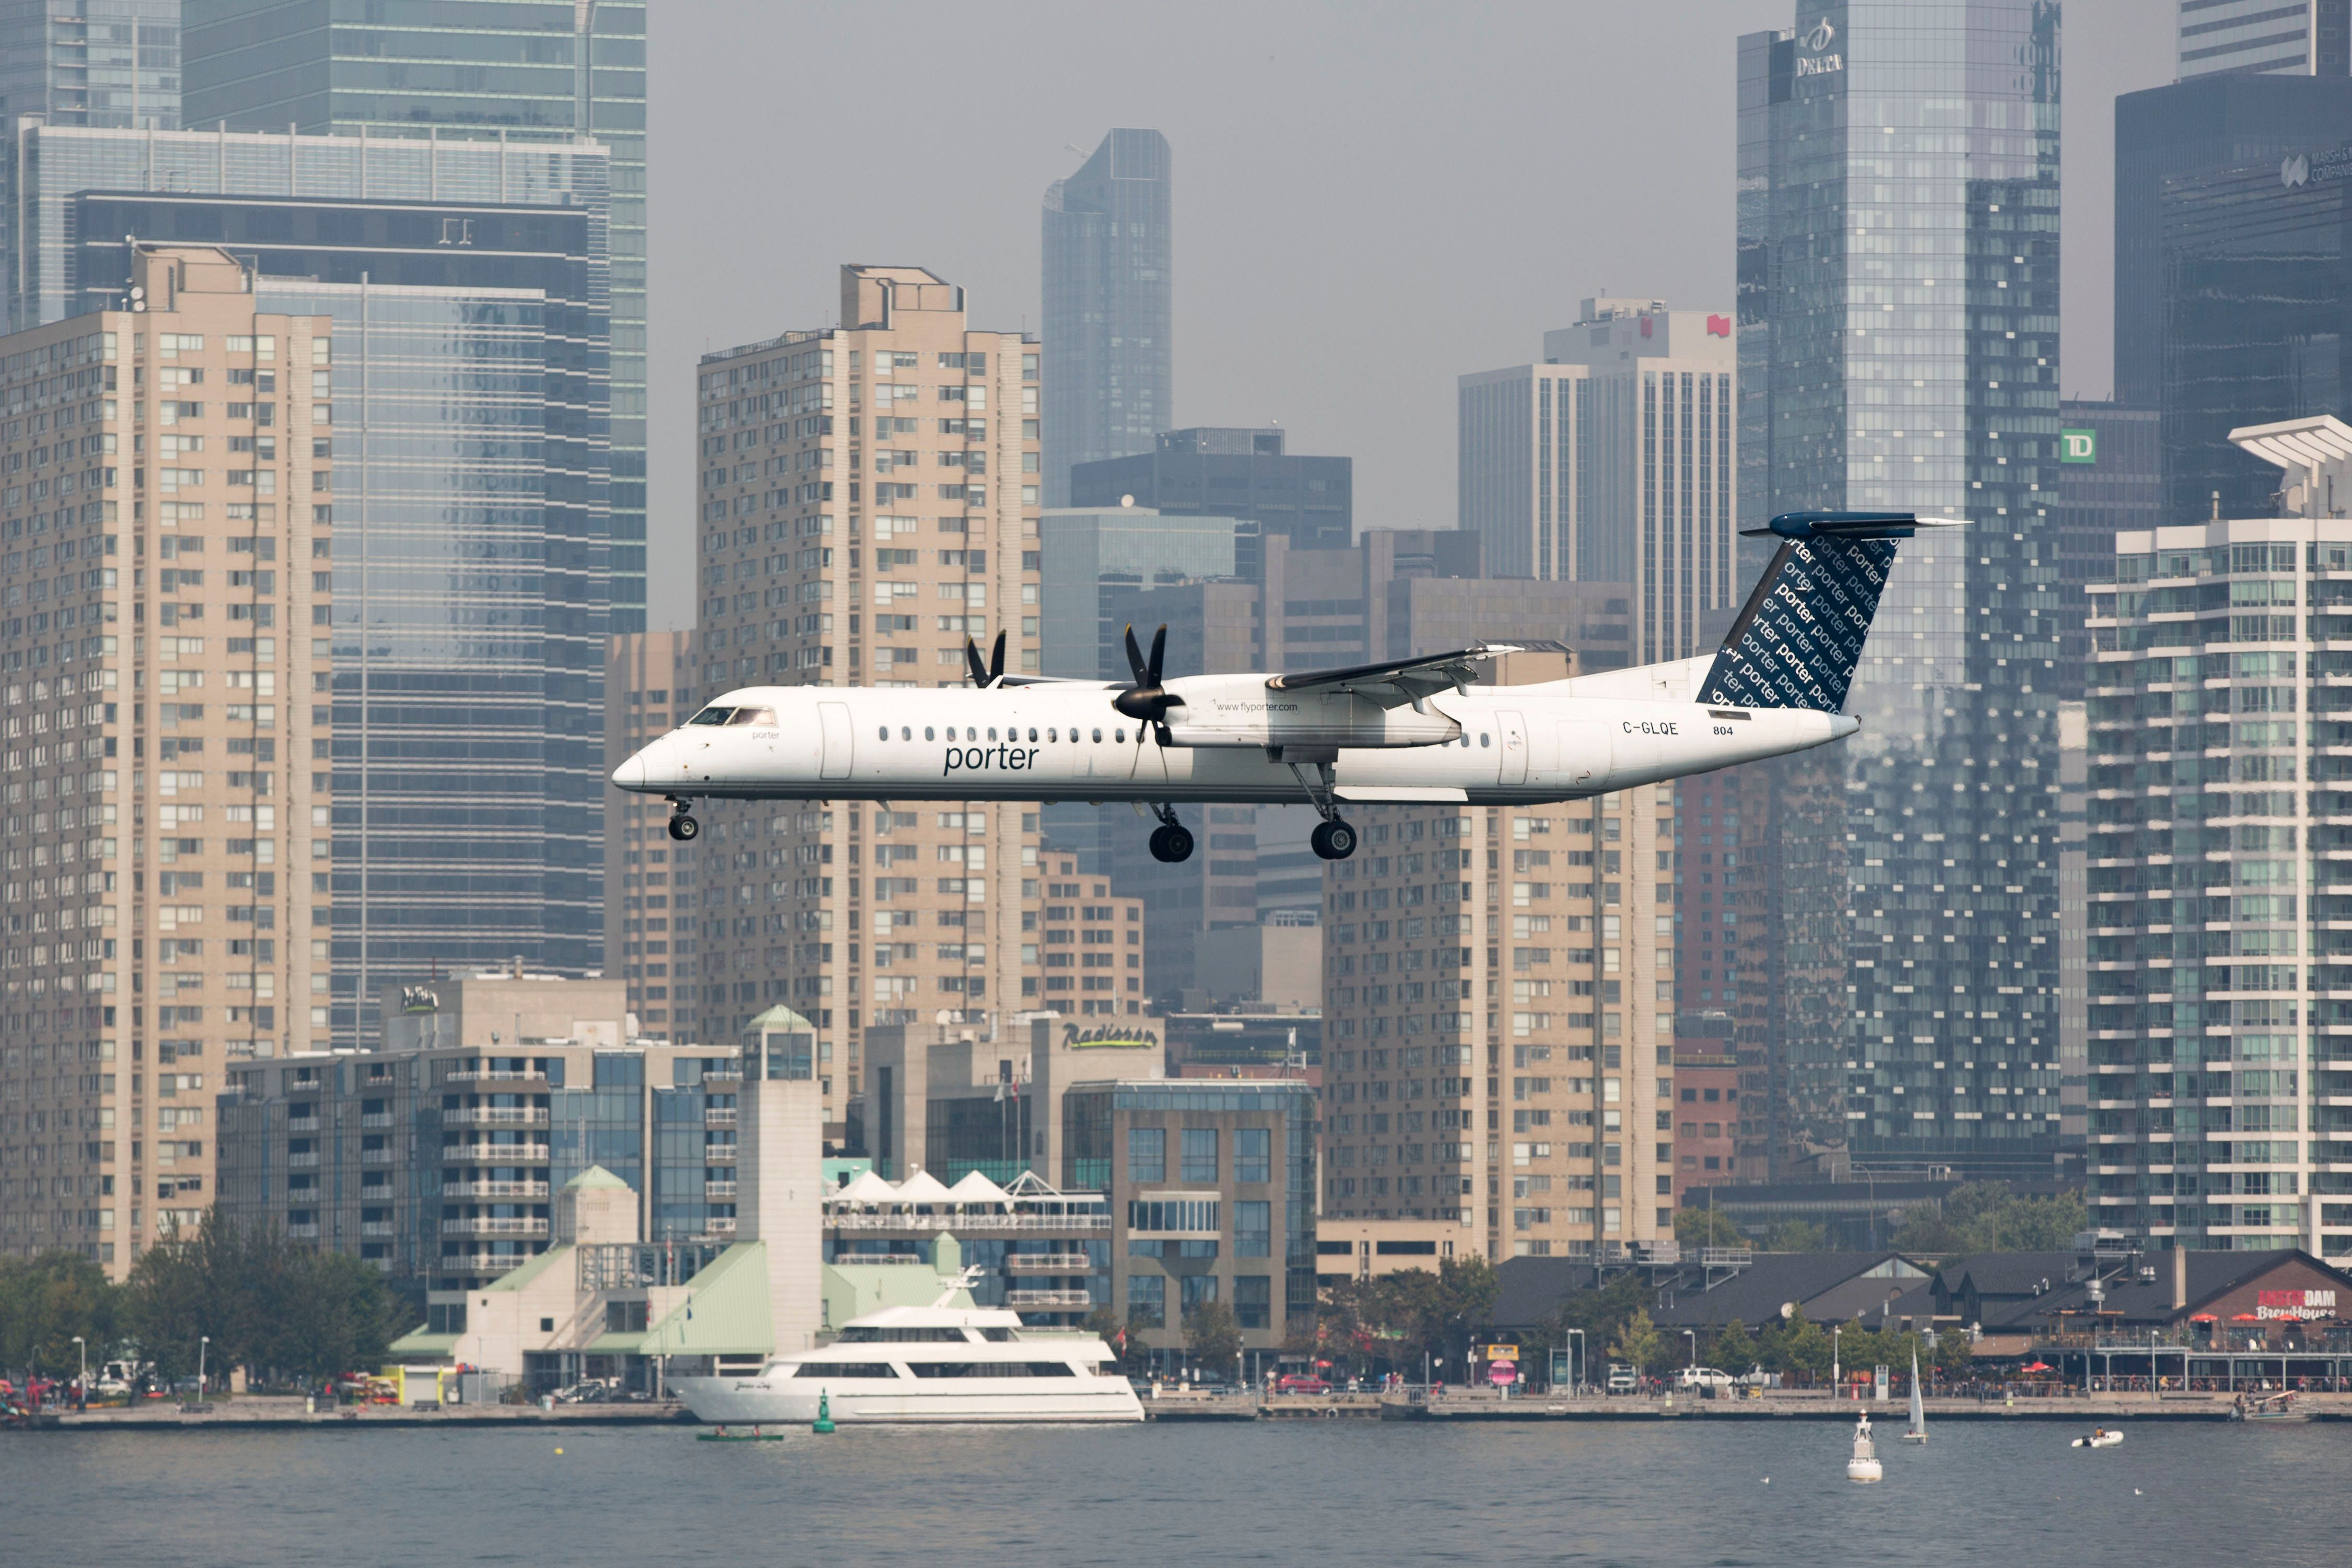 TORONTO, ON - SEPTEMBER 2: Toronto, On- Sep 2, 2015 A Porter Airline flight lands at Toronto's Billy Bishop Airport. Captain Duncan Rand runs the Mariposa's Oriole cruise ship in the Toronto harbour.        (Lucas Oleniuk/Toronto Star via Getty Images)